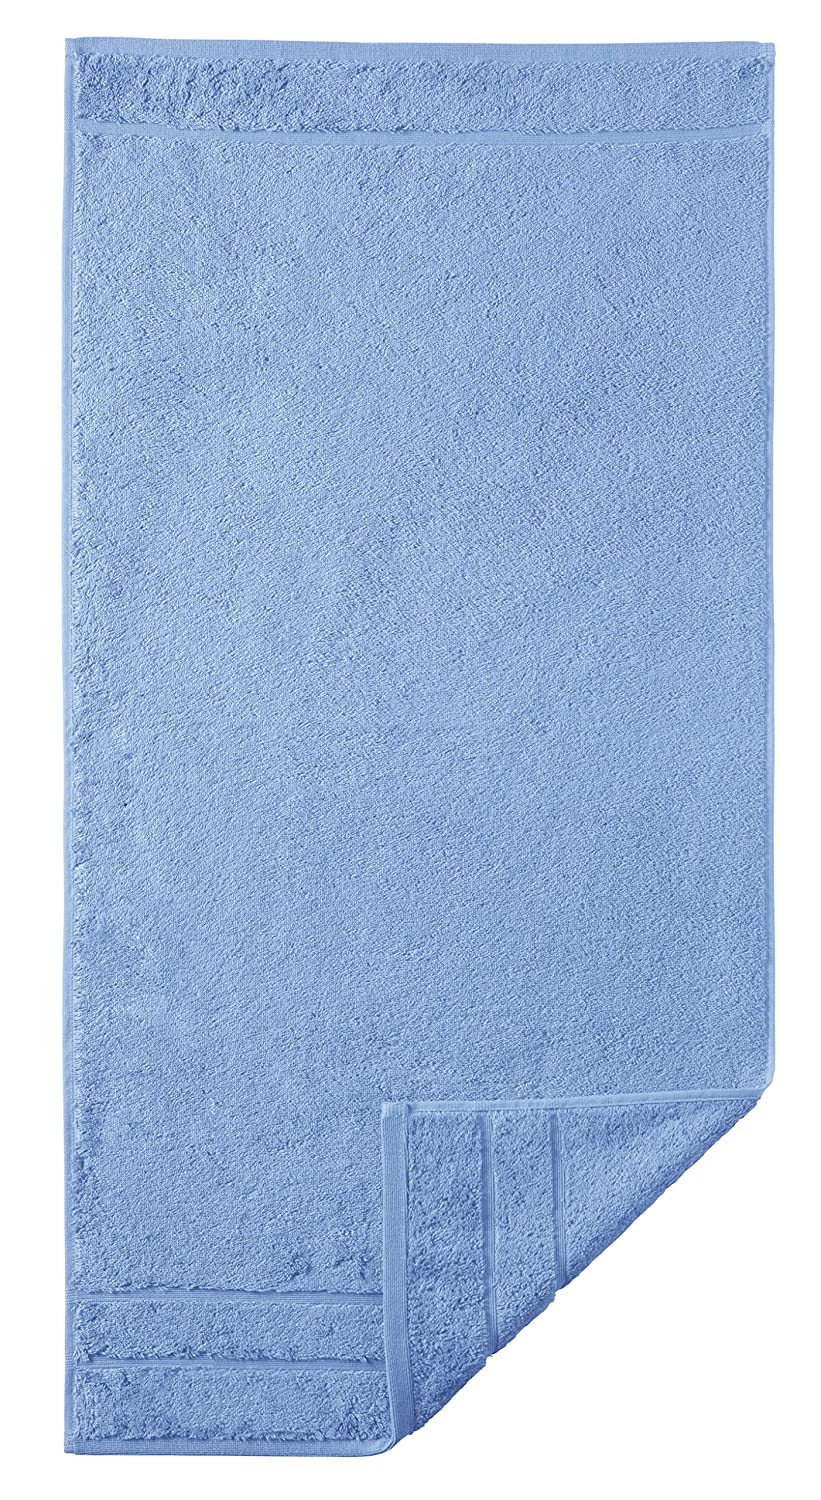 Aneesi Bath & Leisure Prestige Supima Towel – Light Blue Asciugamano ospite (30 x 50 cm) blue 25001